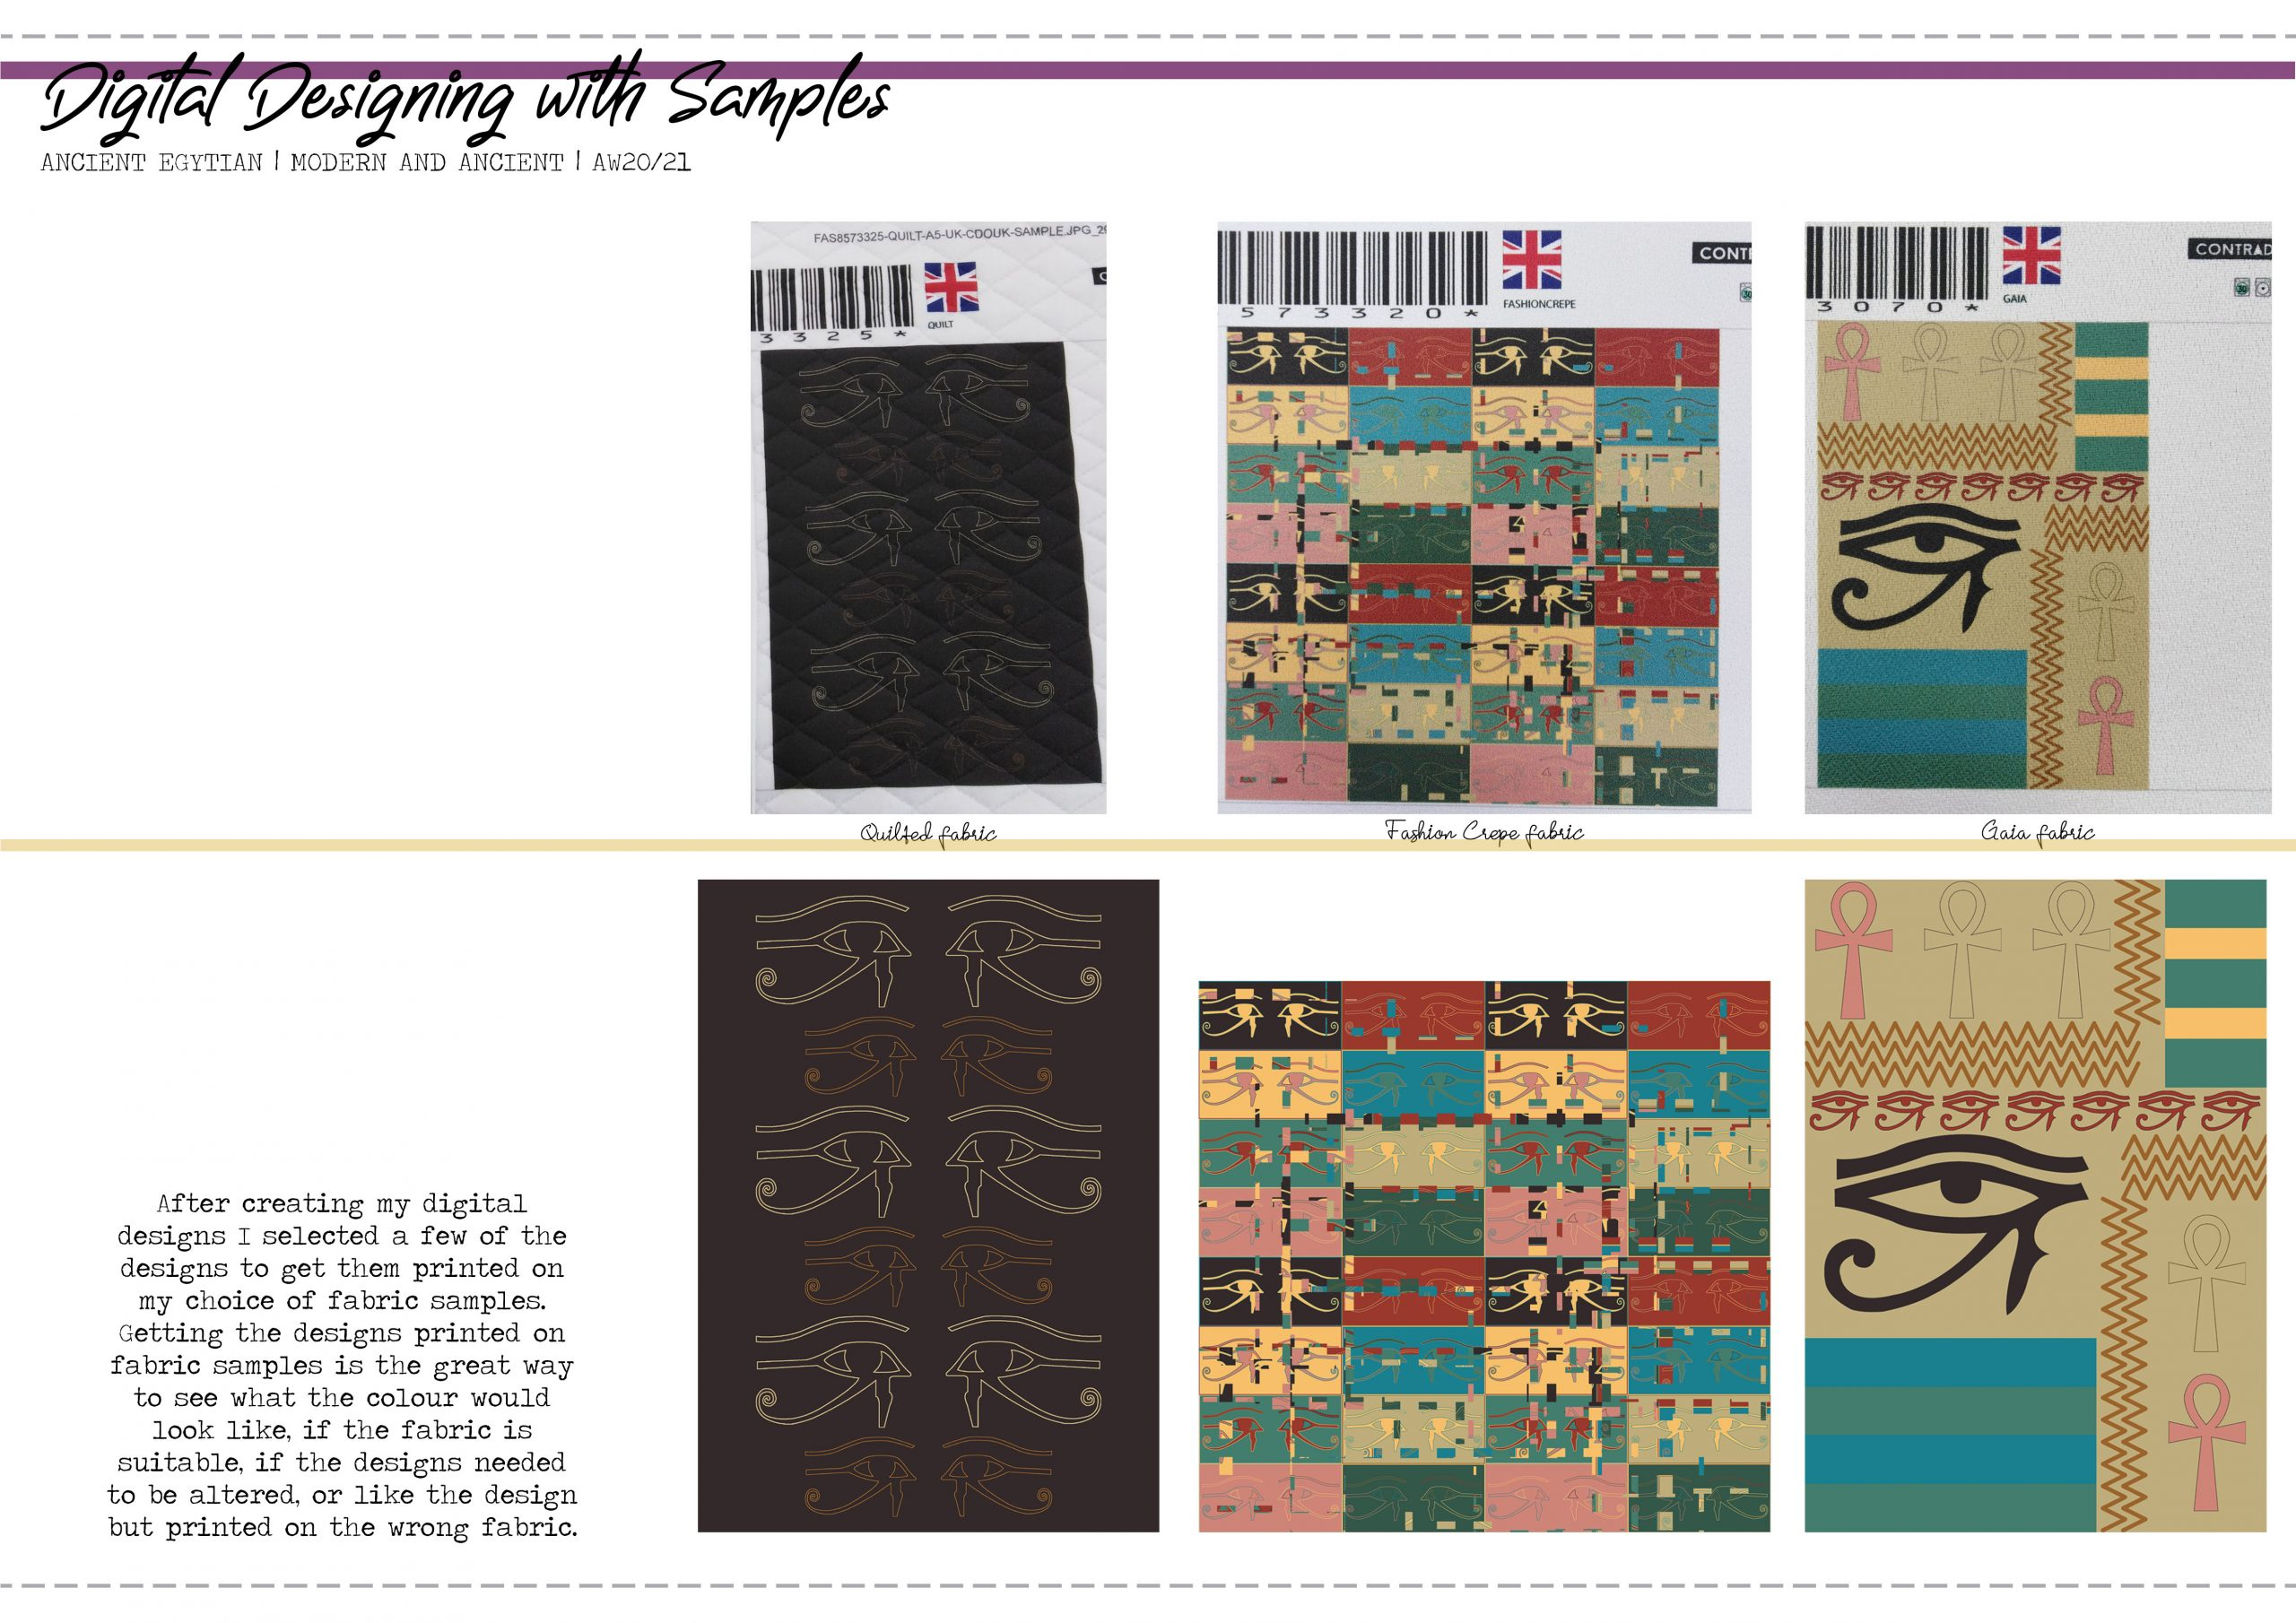 Ancient Egyptian Digital Designing with Samples Image